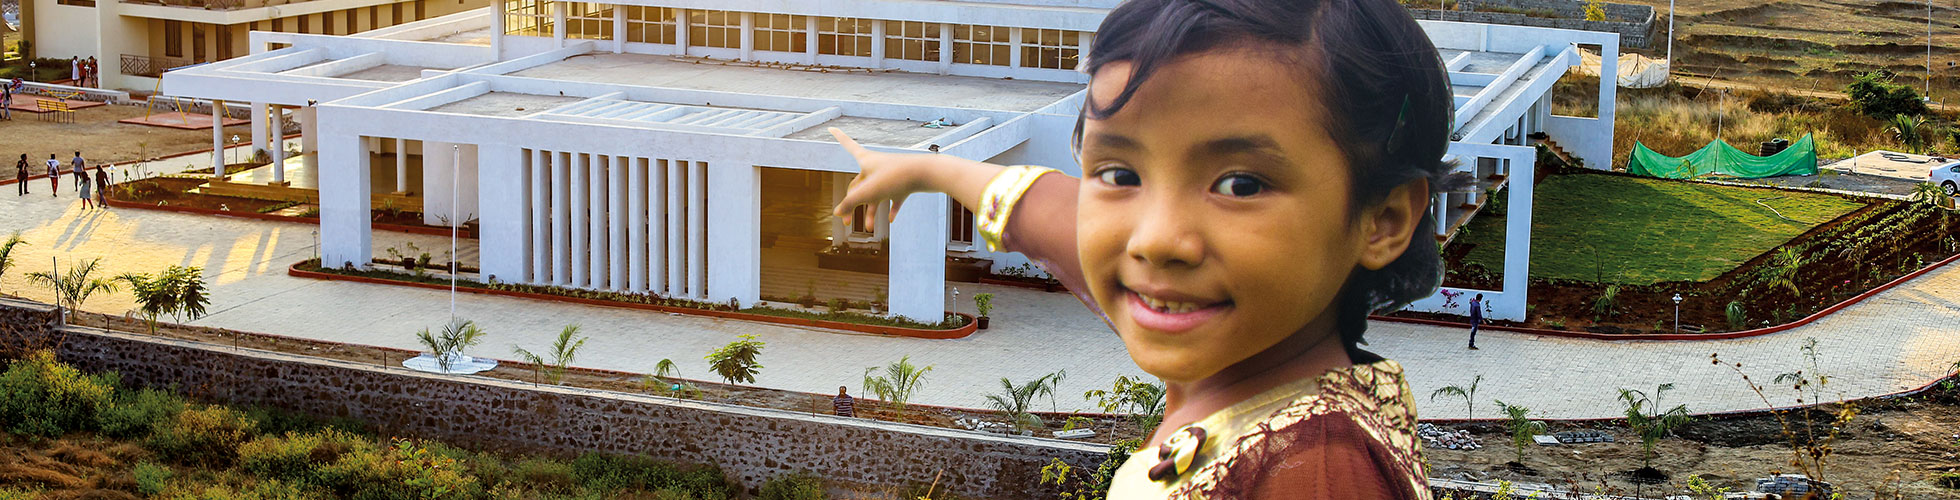 Girl pointing at building